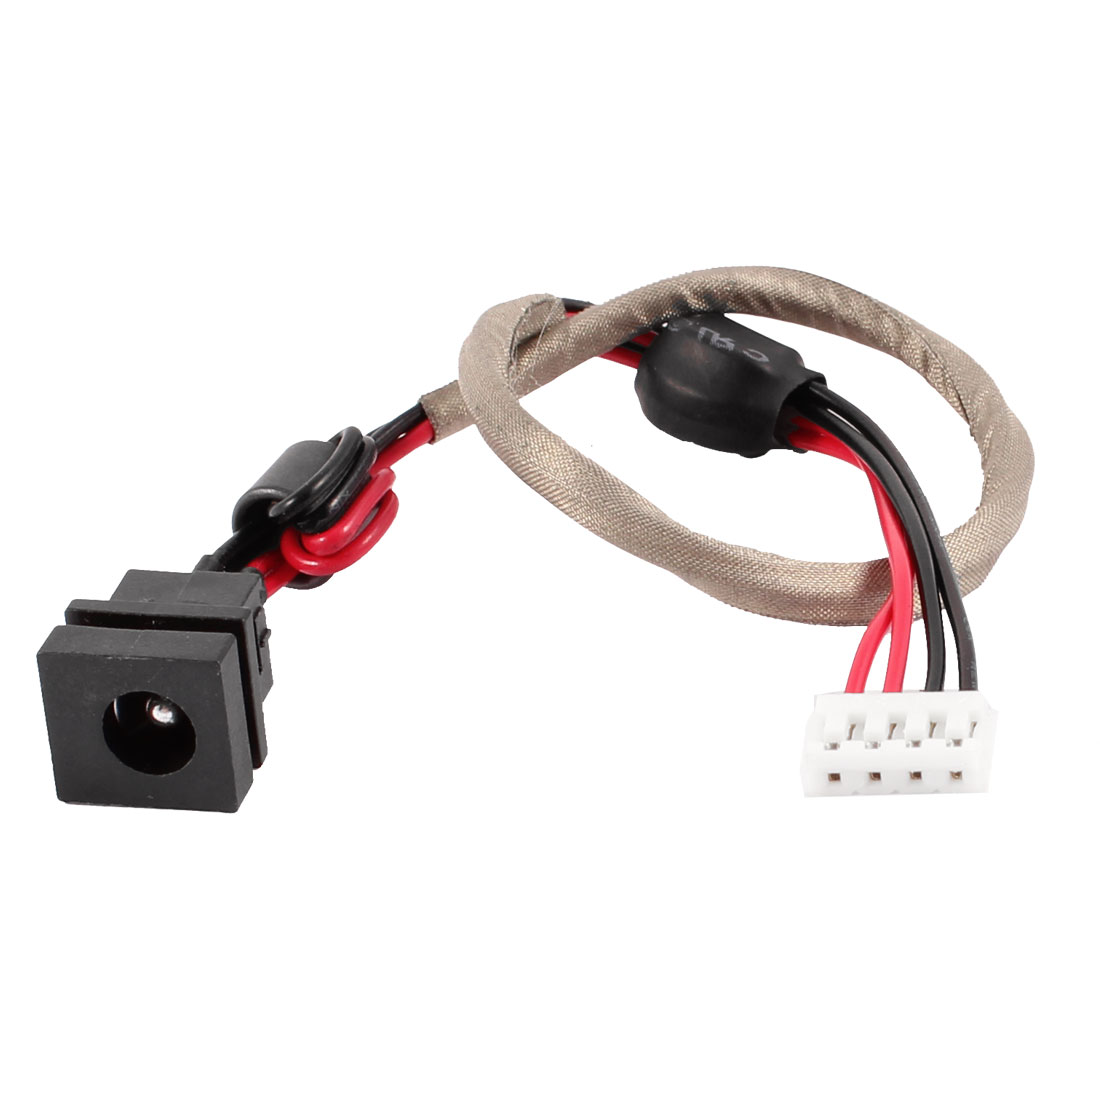 DC Power Jack Socket Cable Wire Harness PJ146 for Notebook